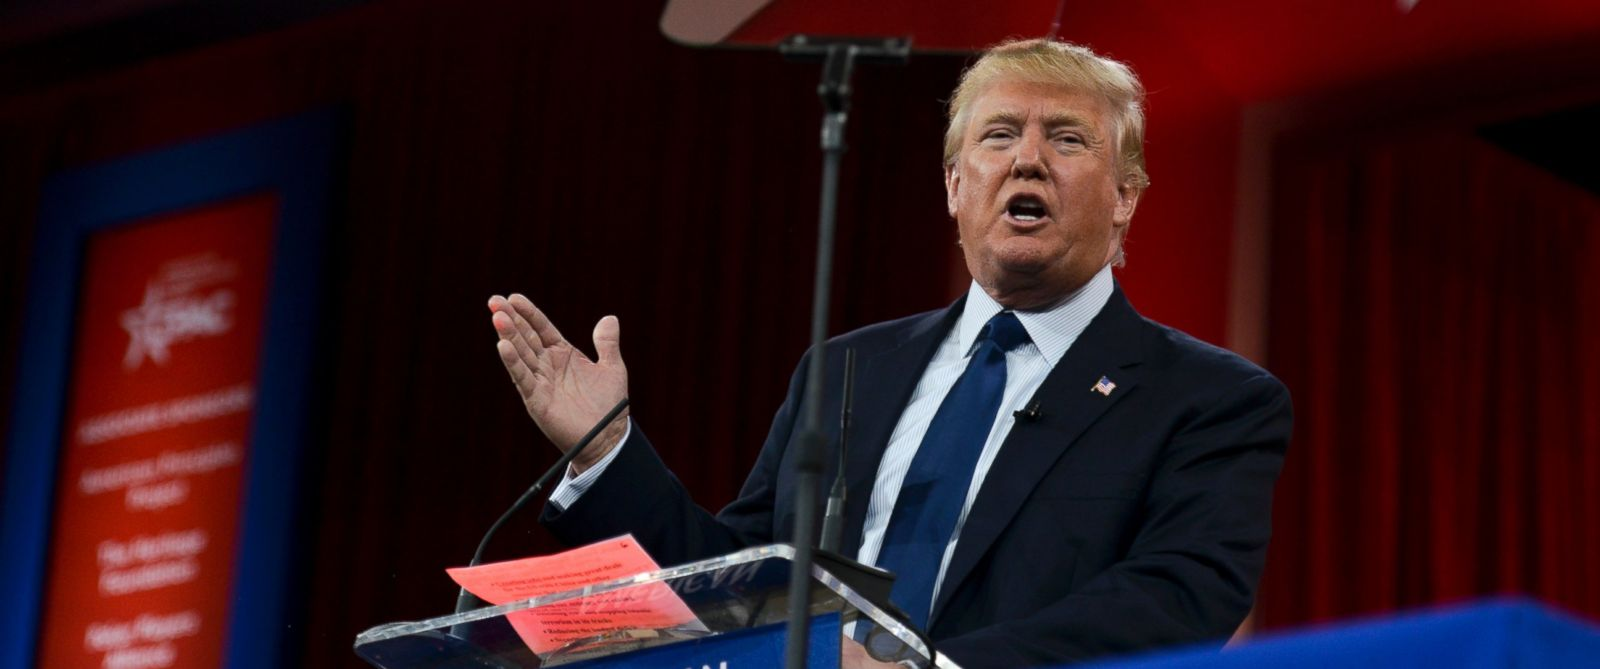 PHOTO: Donald Trump speaks during CPAC2015 (Conservative Political Action Conference) at the National Harbor Gaylord, Feb. 27, 2015, in Oxon Hill, Maryland.